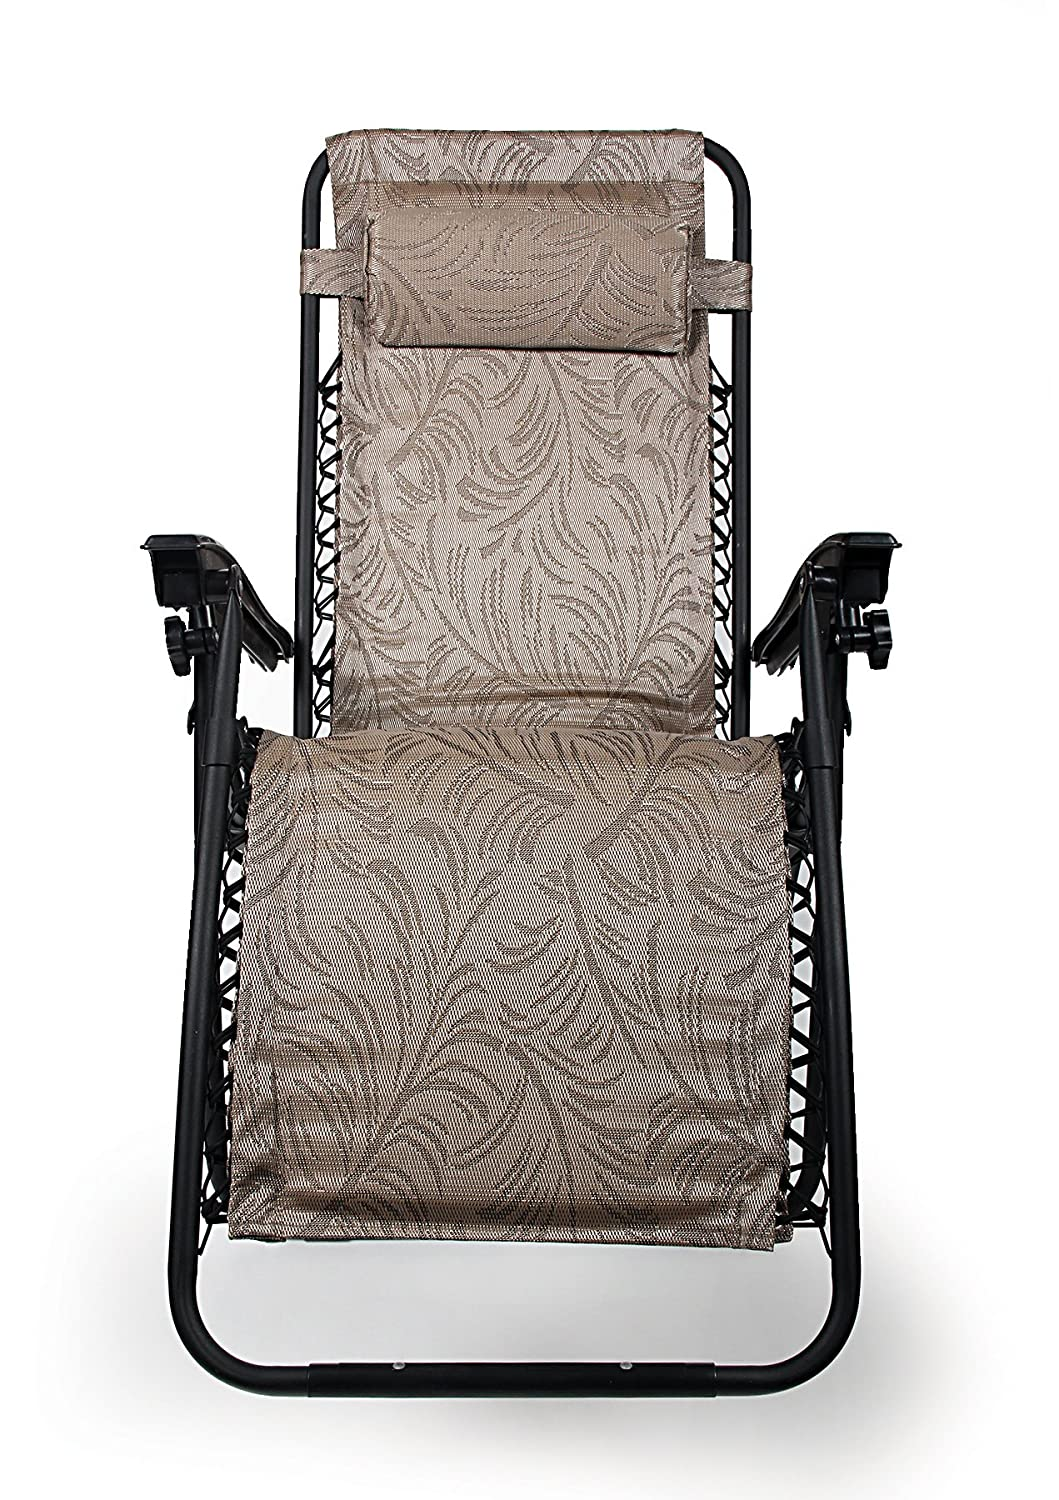 Camco 51812 Zero Gravity Recliner (Tan Fern Pattern)